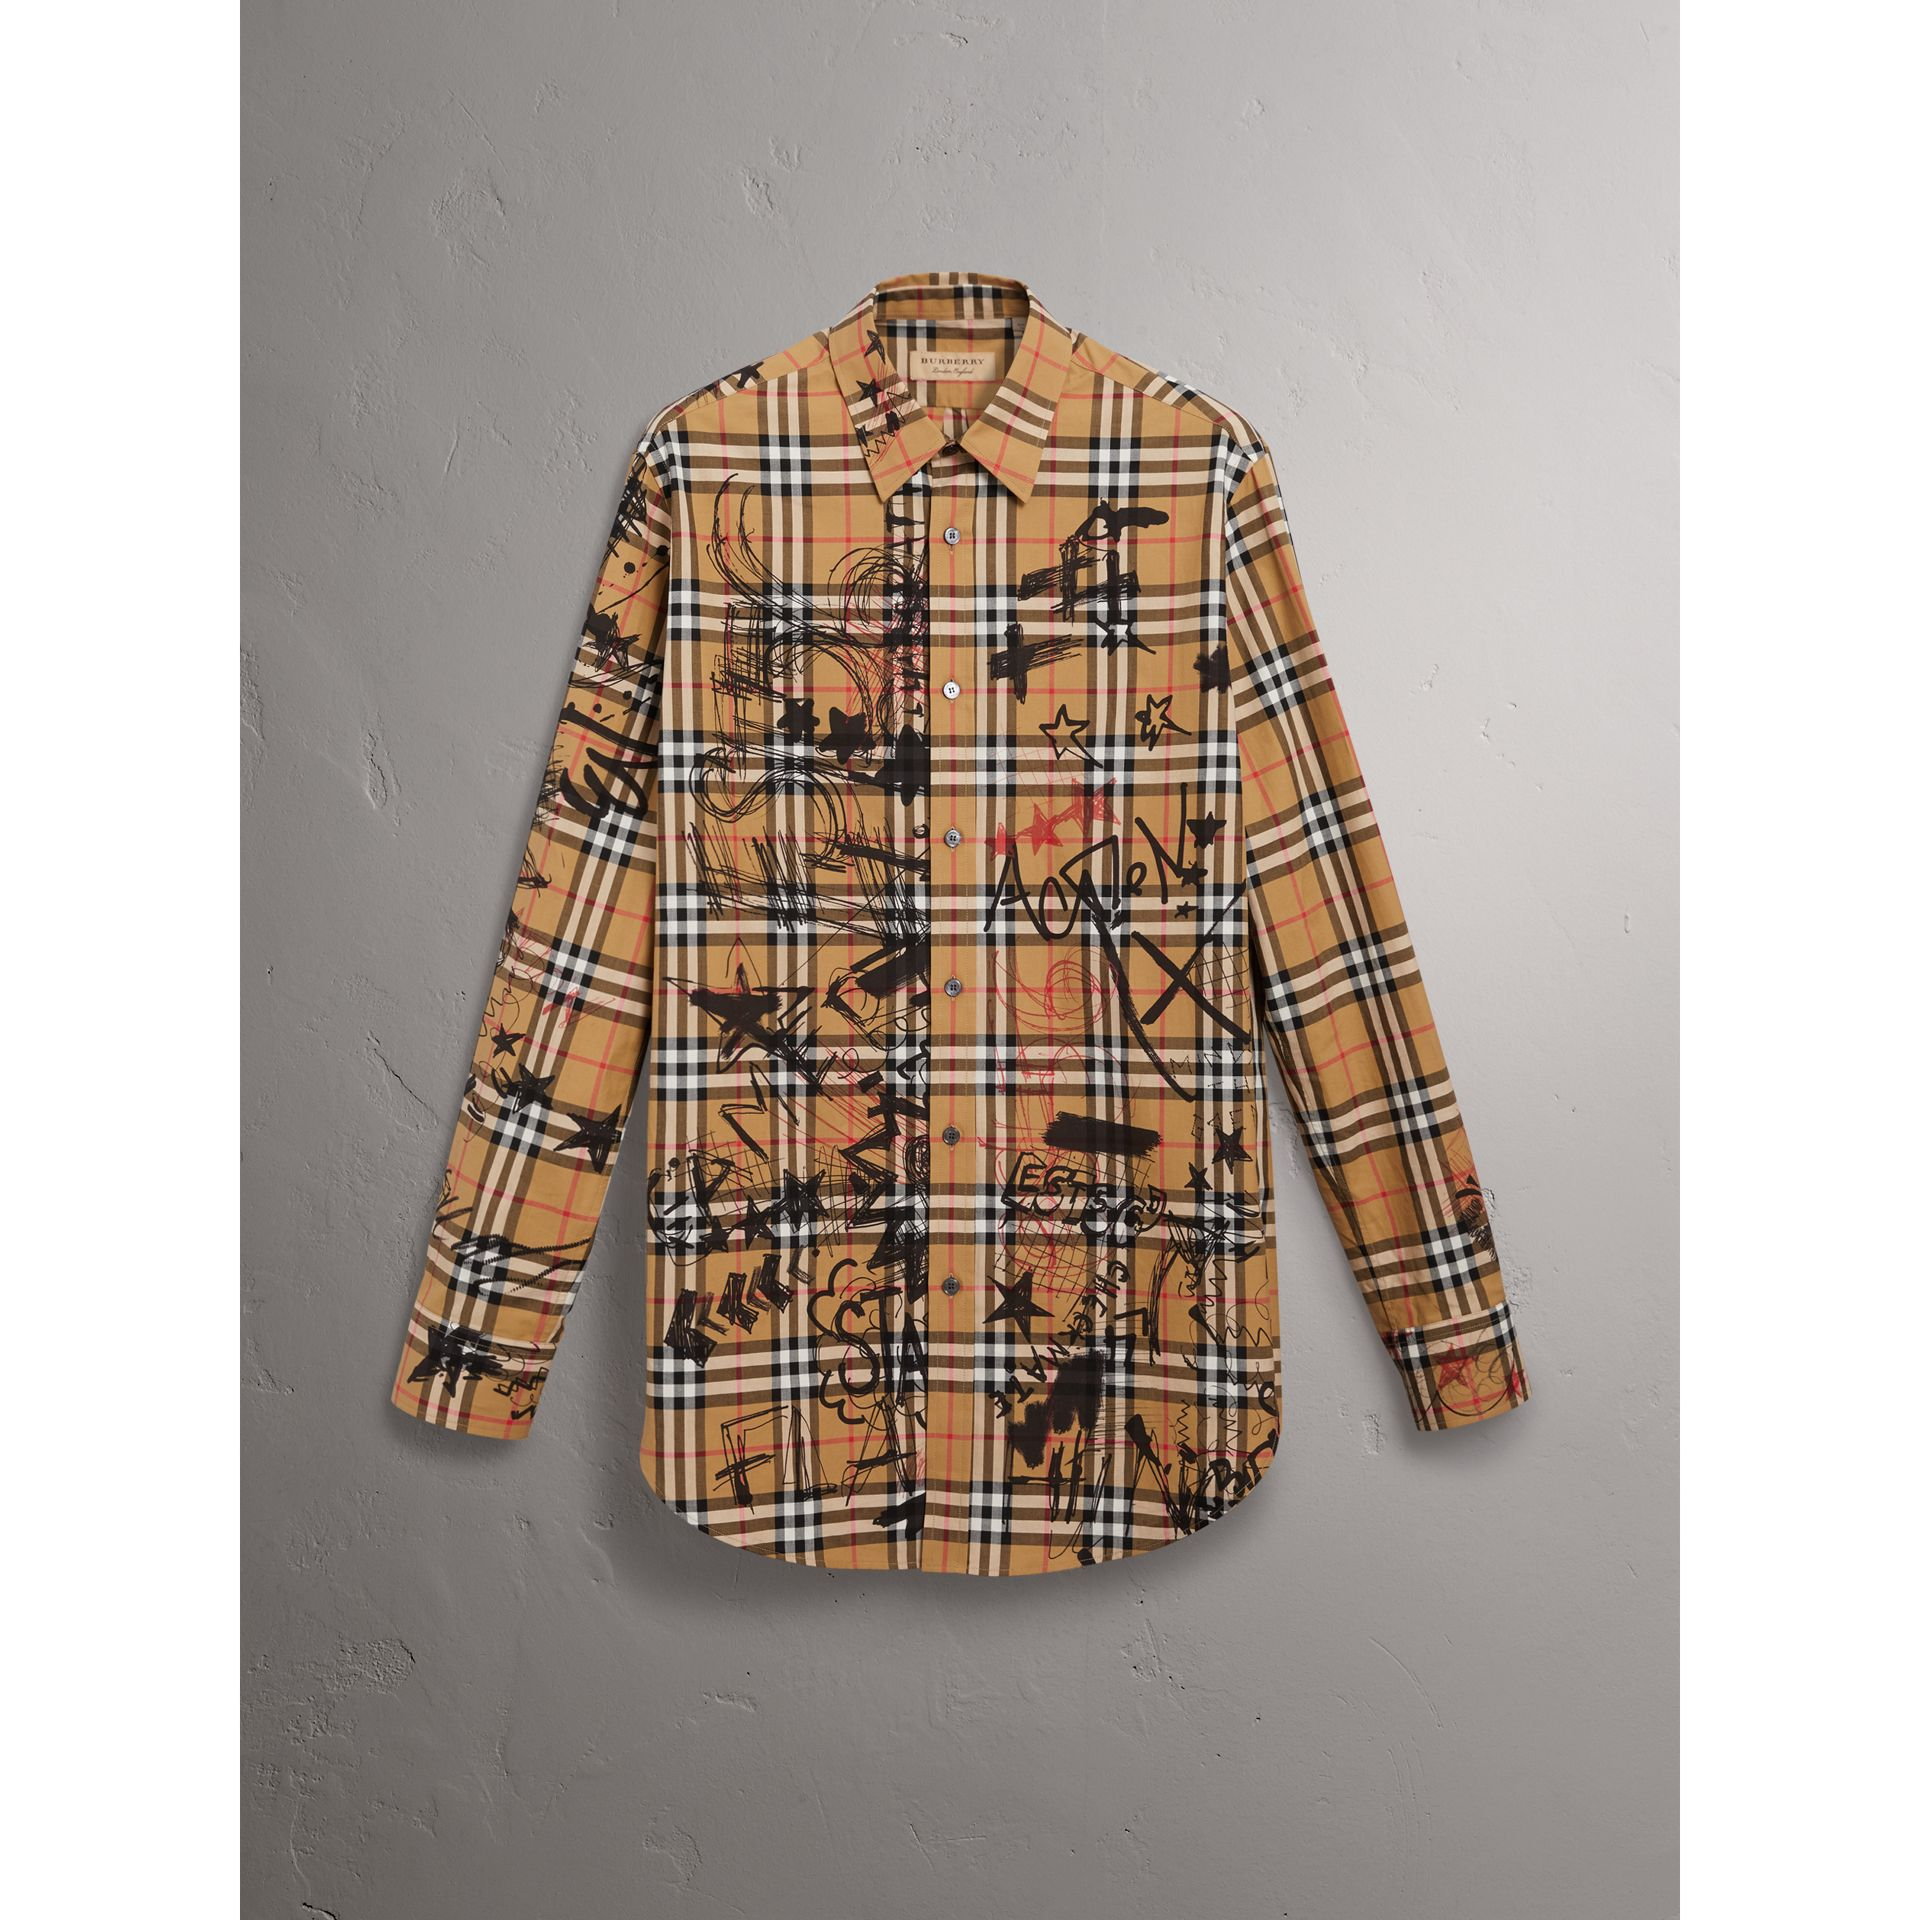 Burberry x Kris Wu Vintage Check Cotton Shirt in Antique Yellow - Men | Burberry United Kingdom - gallery image 3